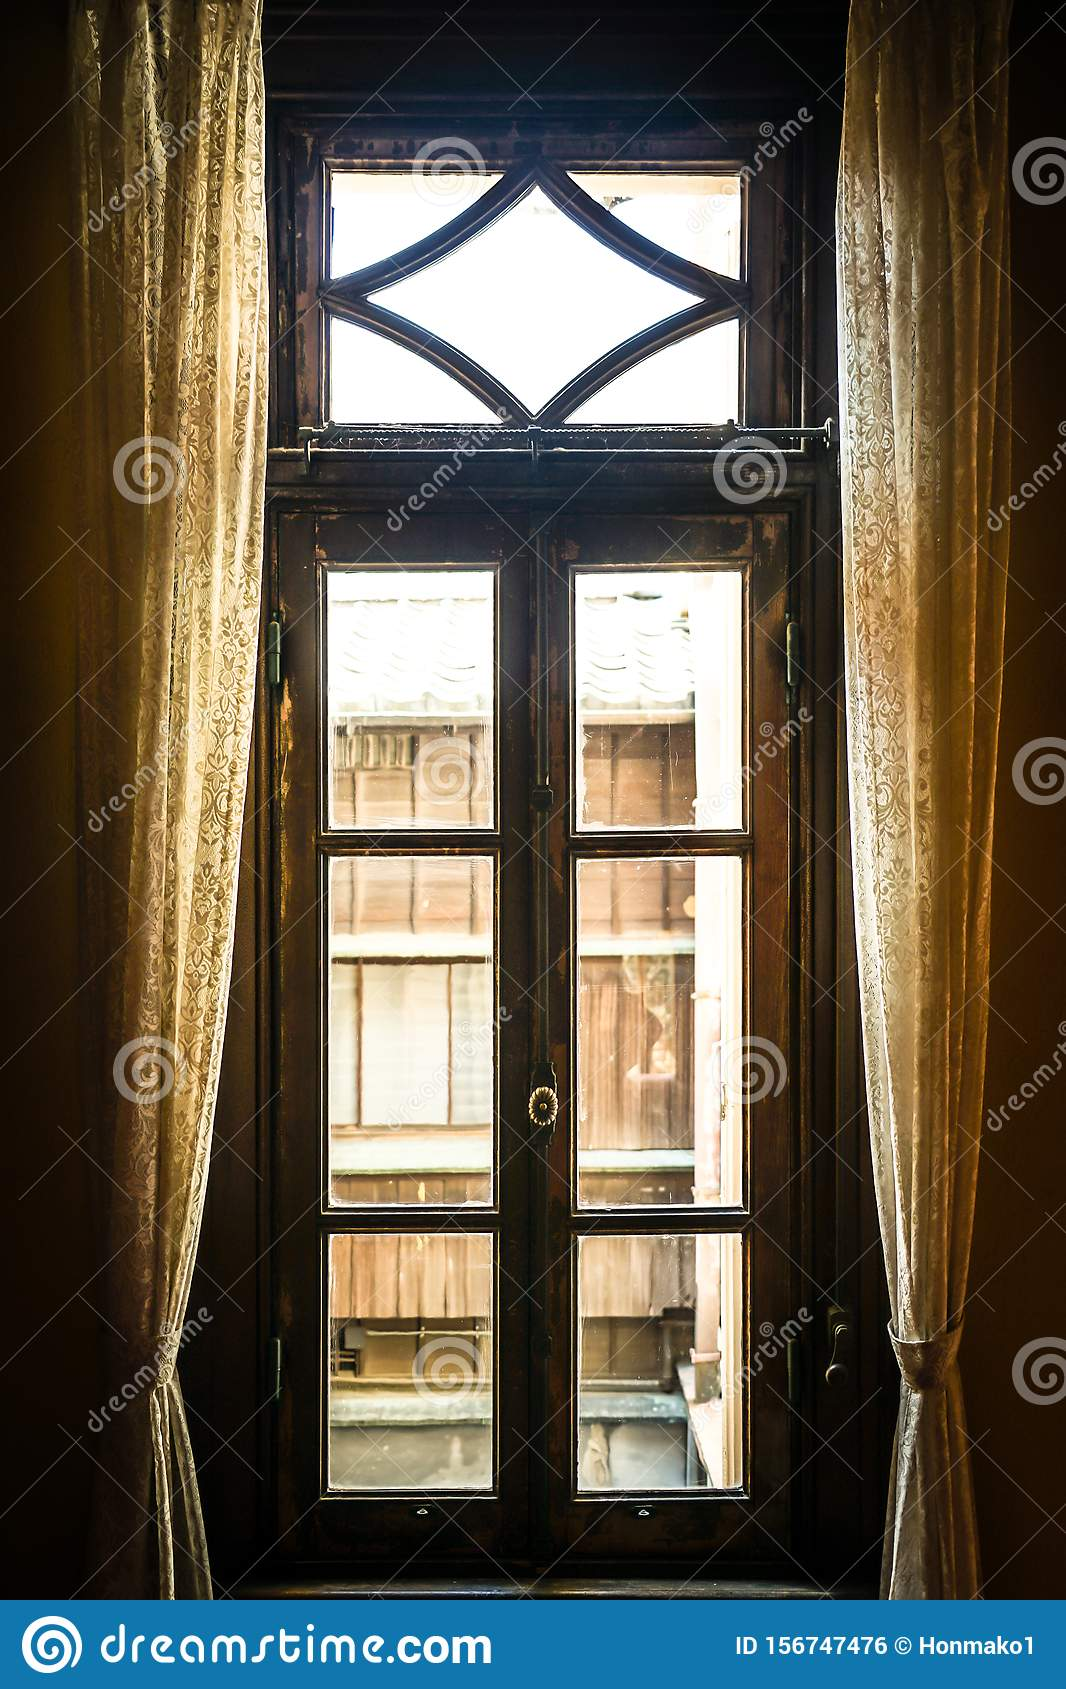 The window of the mansion